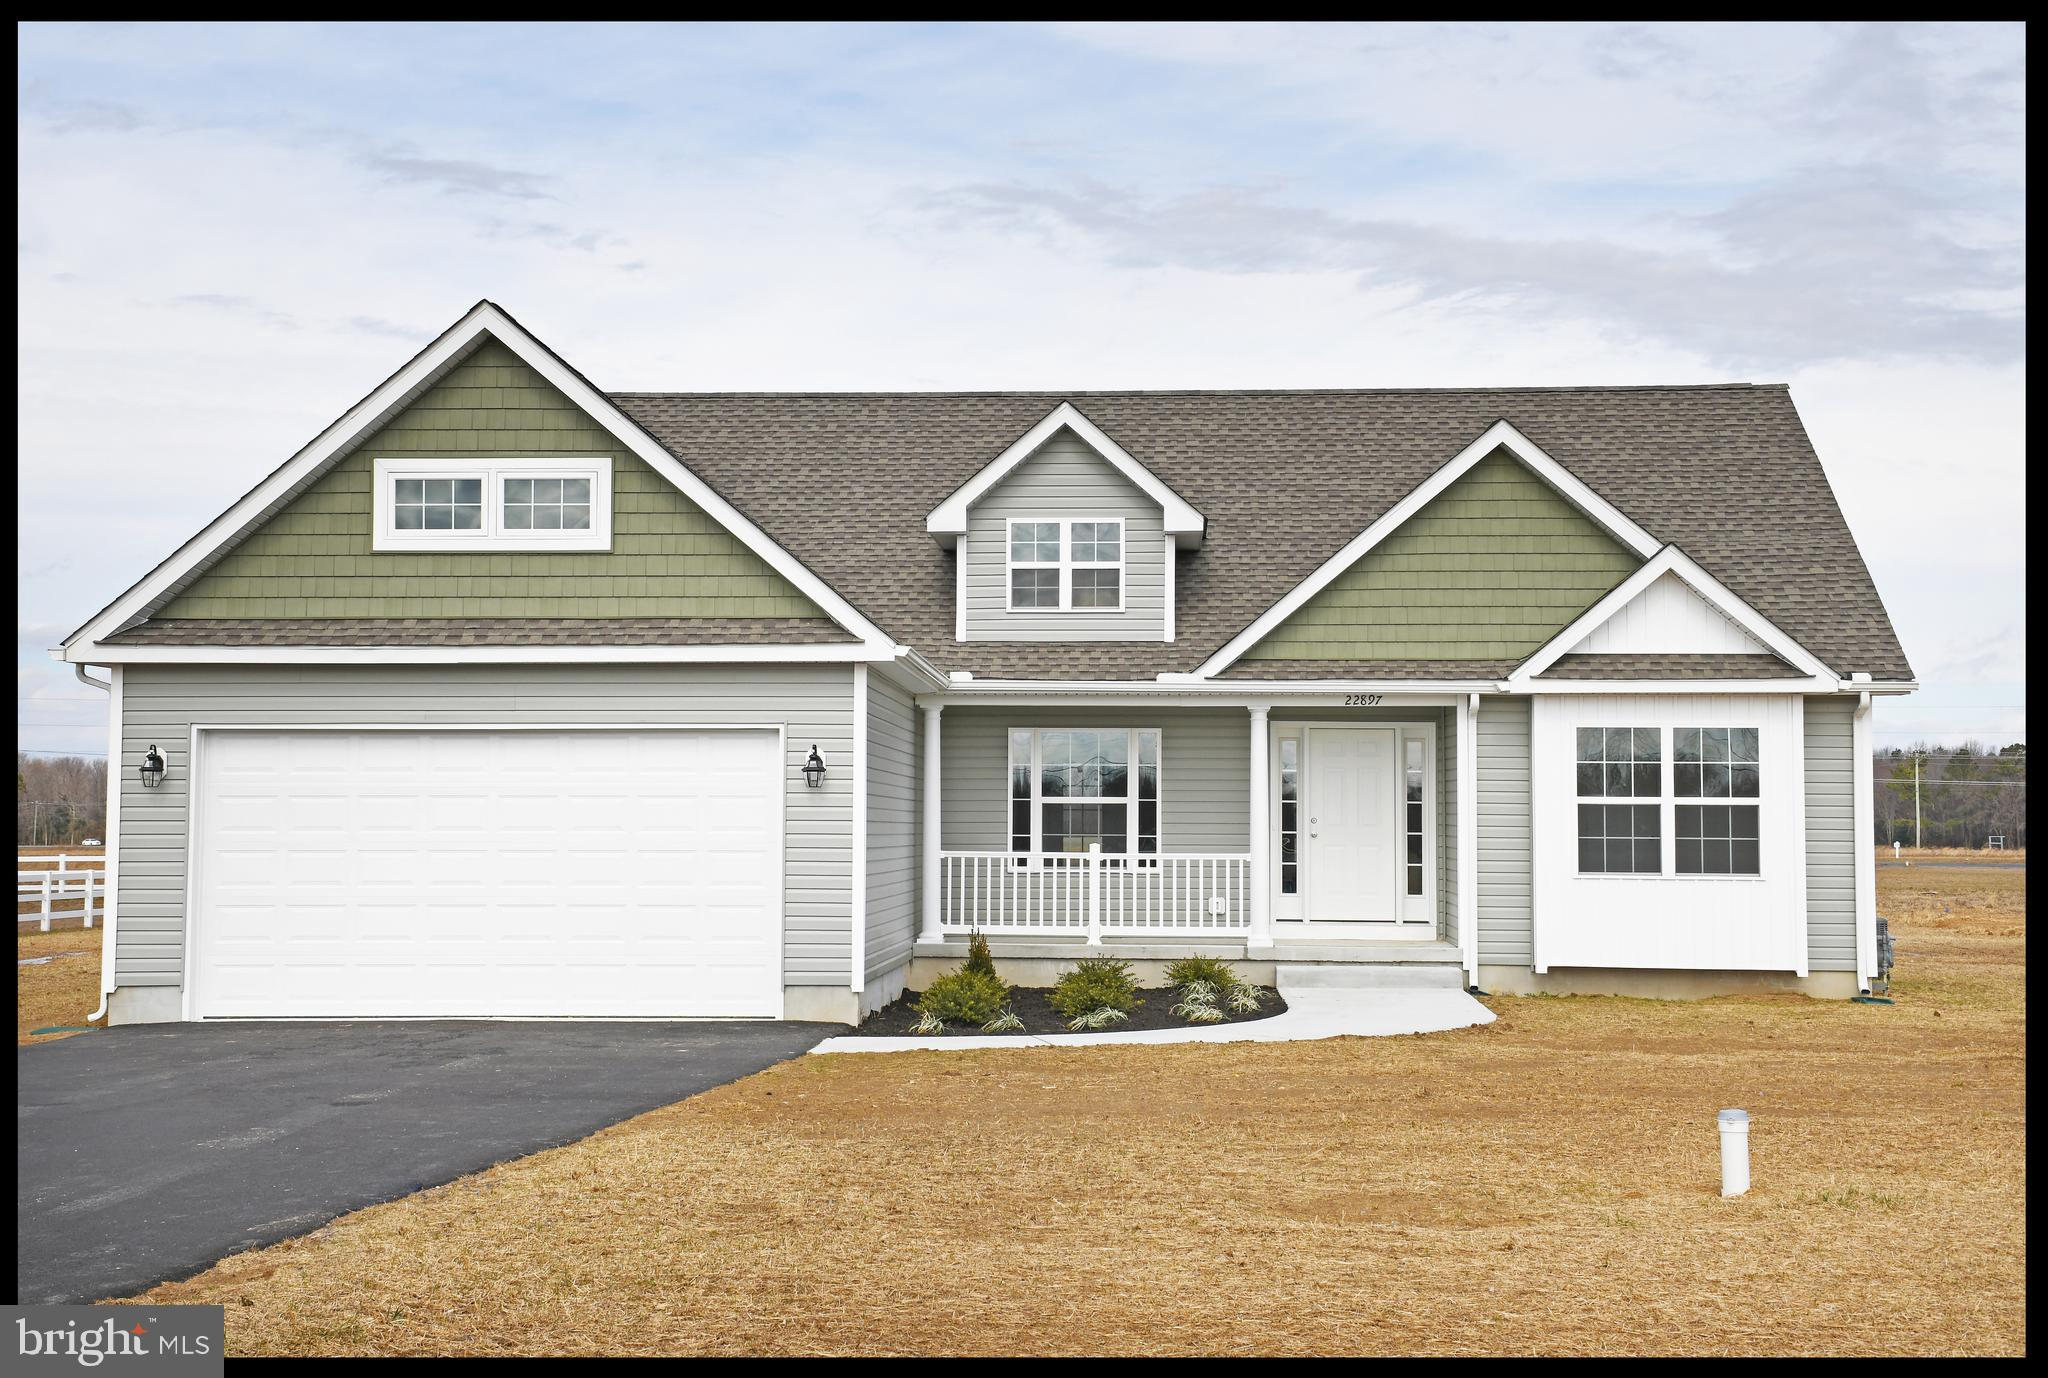 """""""The Wesley III""""  in Southfield.  Built by a local builder -Humes Construction.   This home is a split floor plan with three bedrooms and two full baths.  Open floor plan with gathering area, dining area with kitchen has vinyl plank flooring.  Kitchen with Wolf cabinets, granite, & stainless appliances.  Owners suite has full bath and walk in closet.  Two nicely sized guest bedrooms and a full guest bath.  Large laundry.  Two car finished garage.  Front covered porch; rear screened porch.  Community water, County sewer, and natural gas.  Only county taxes."""